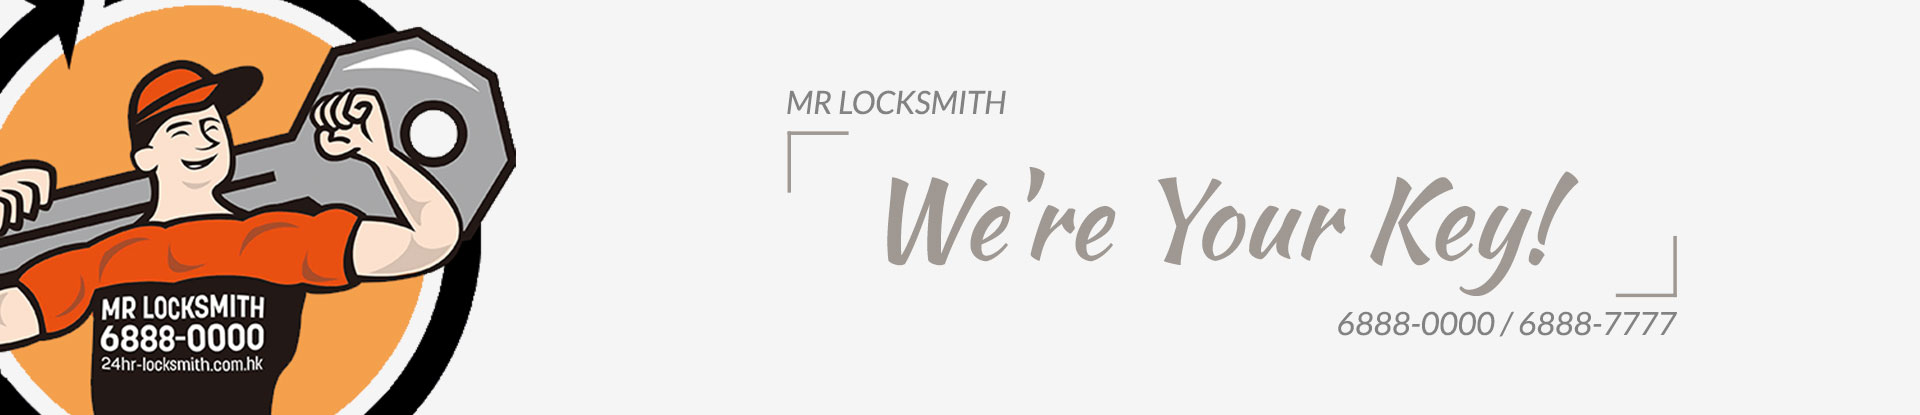 Mid-levels Locksmith -Locksmith in Mid-levels